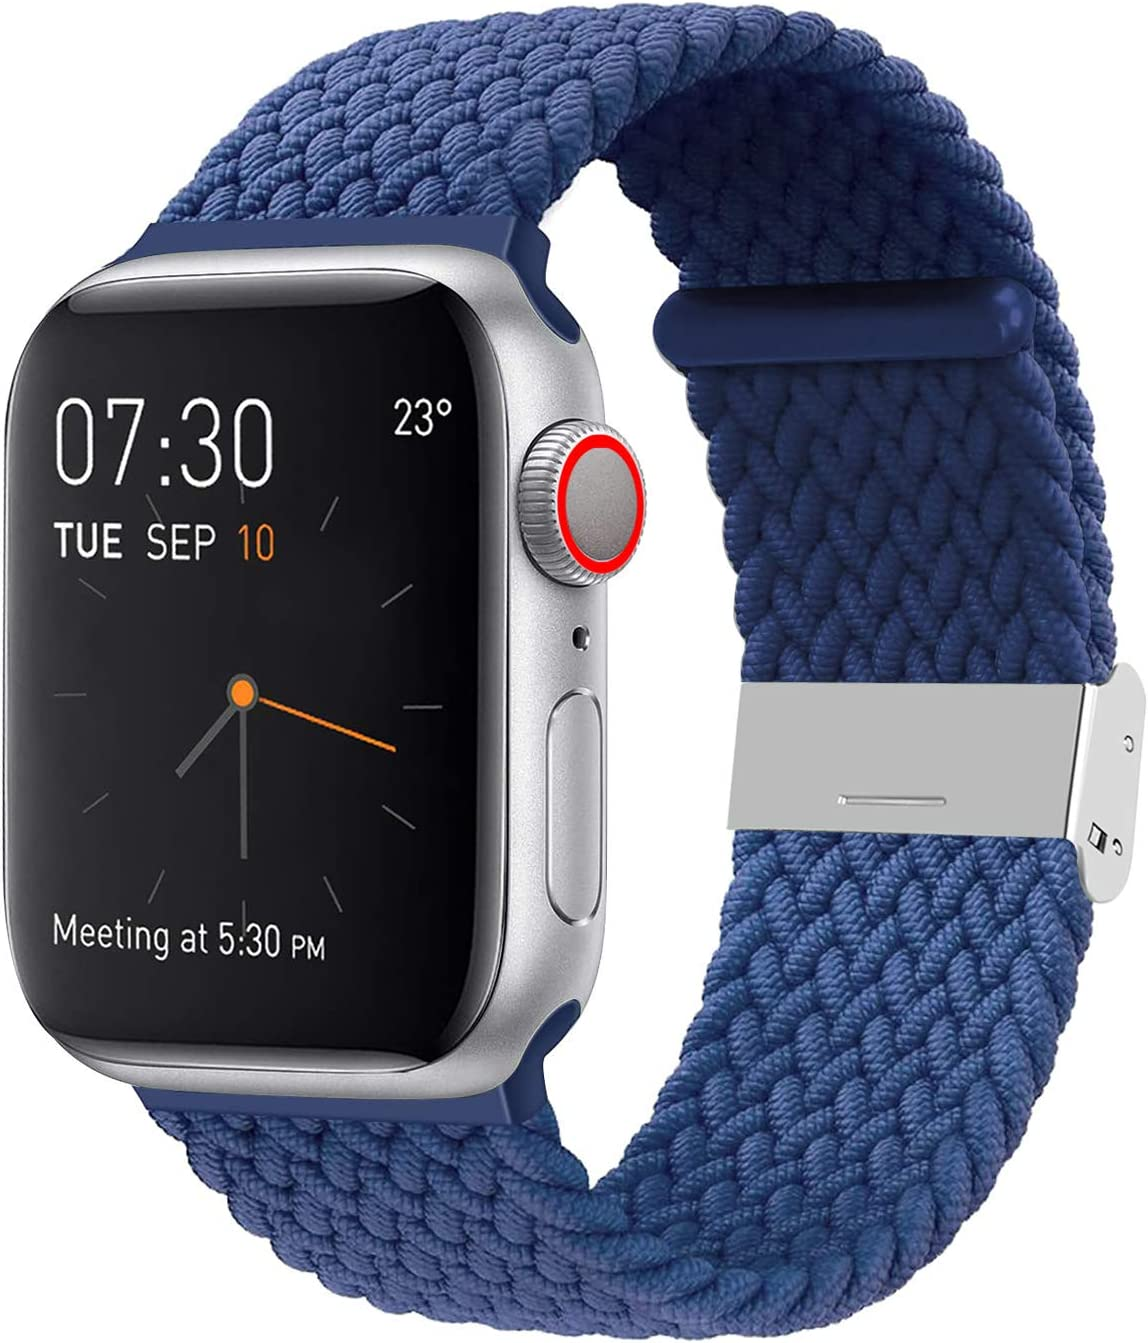 YOTAN Braided Solo Band Compatible with Apple Watch 38mm 40mm, Adjustable Soft Stretch Sport Elastics Women Men Loop Strap Compatible with iWatch Series 6/5/4/3/2/1 SE Blue